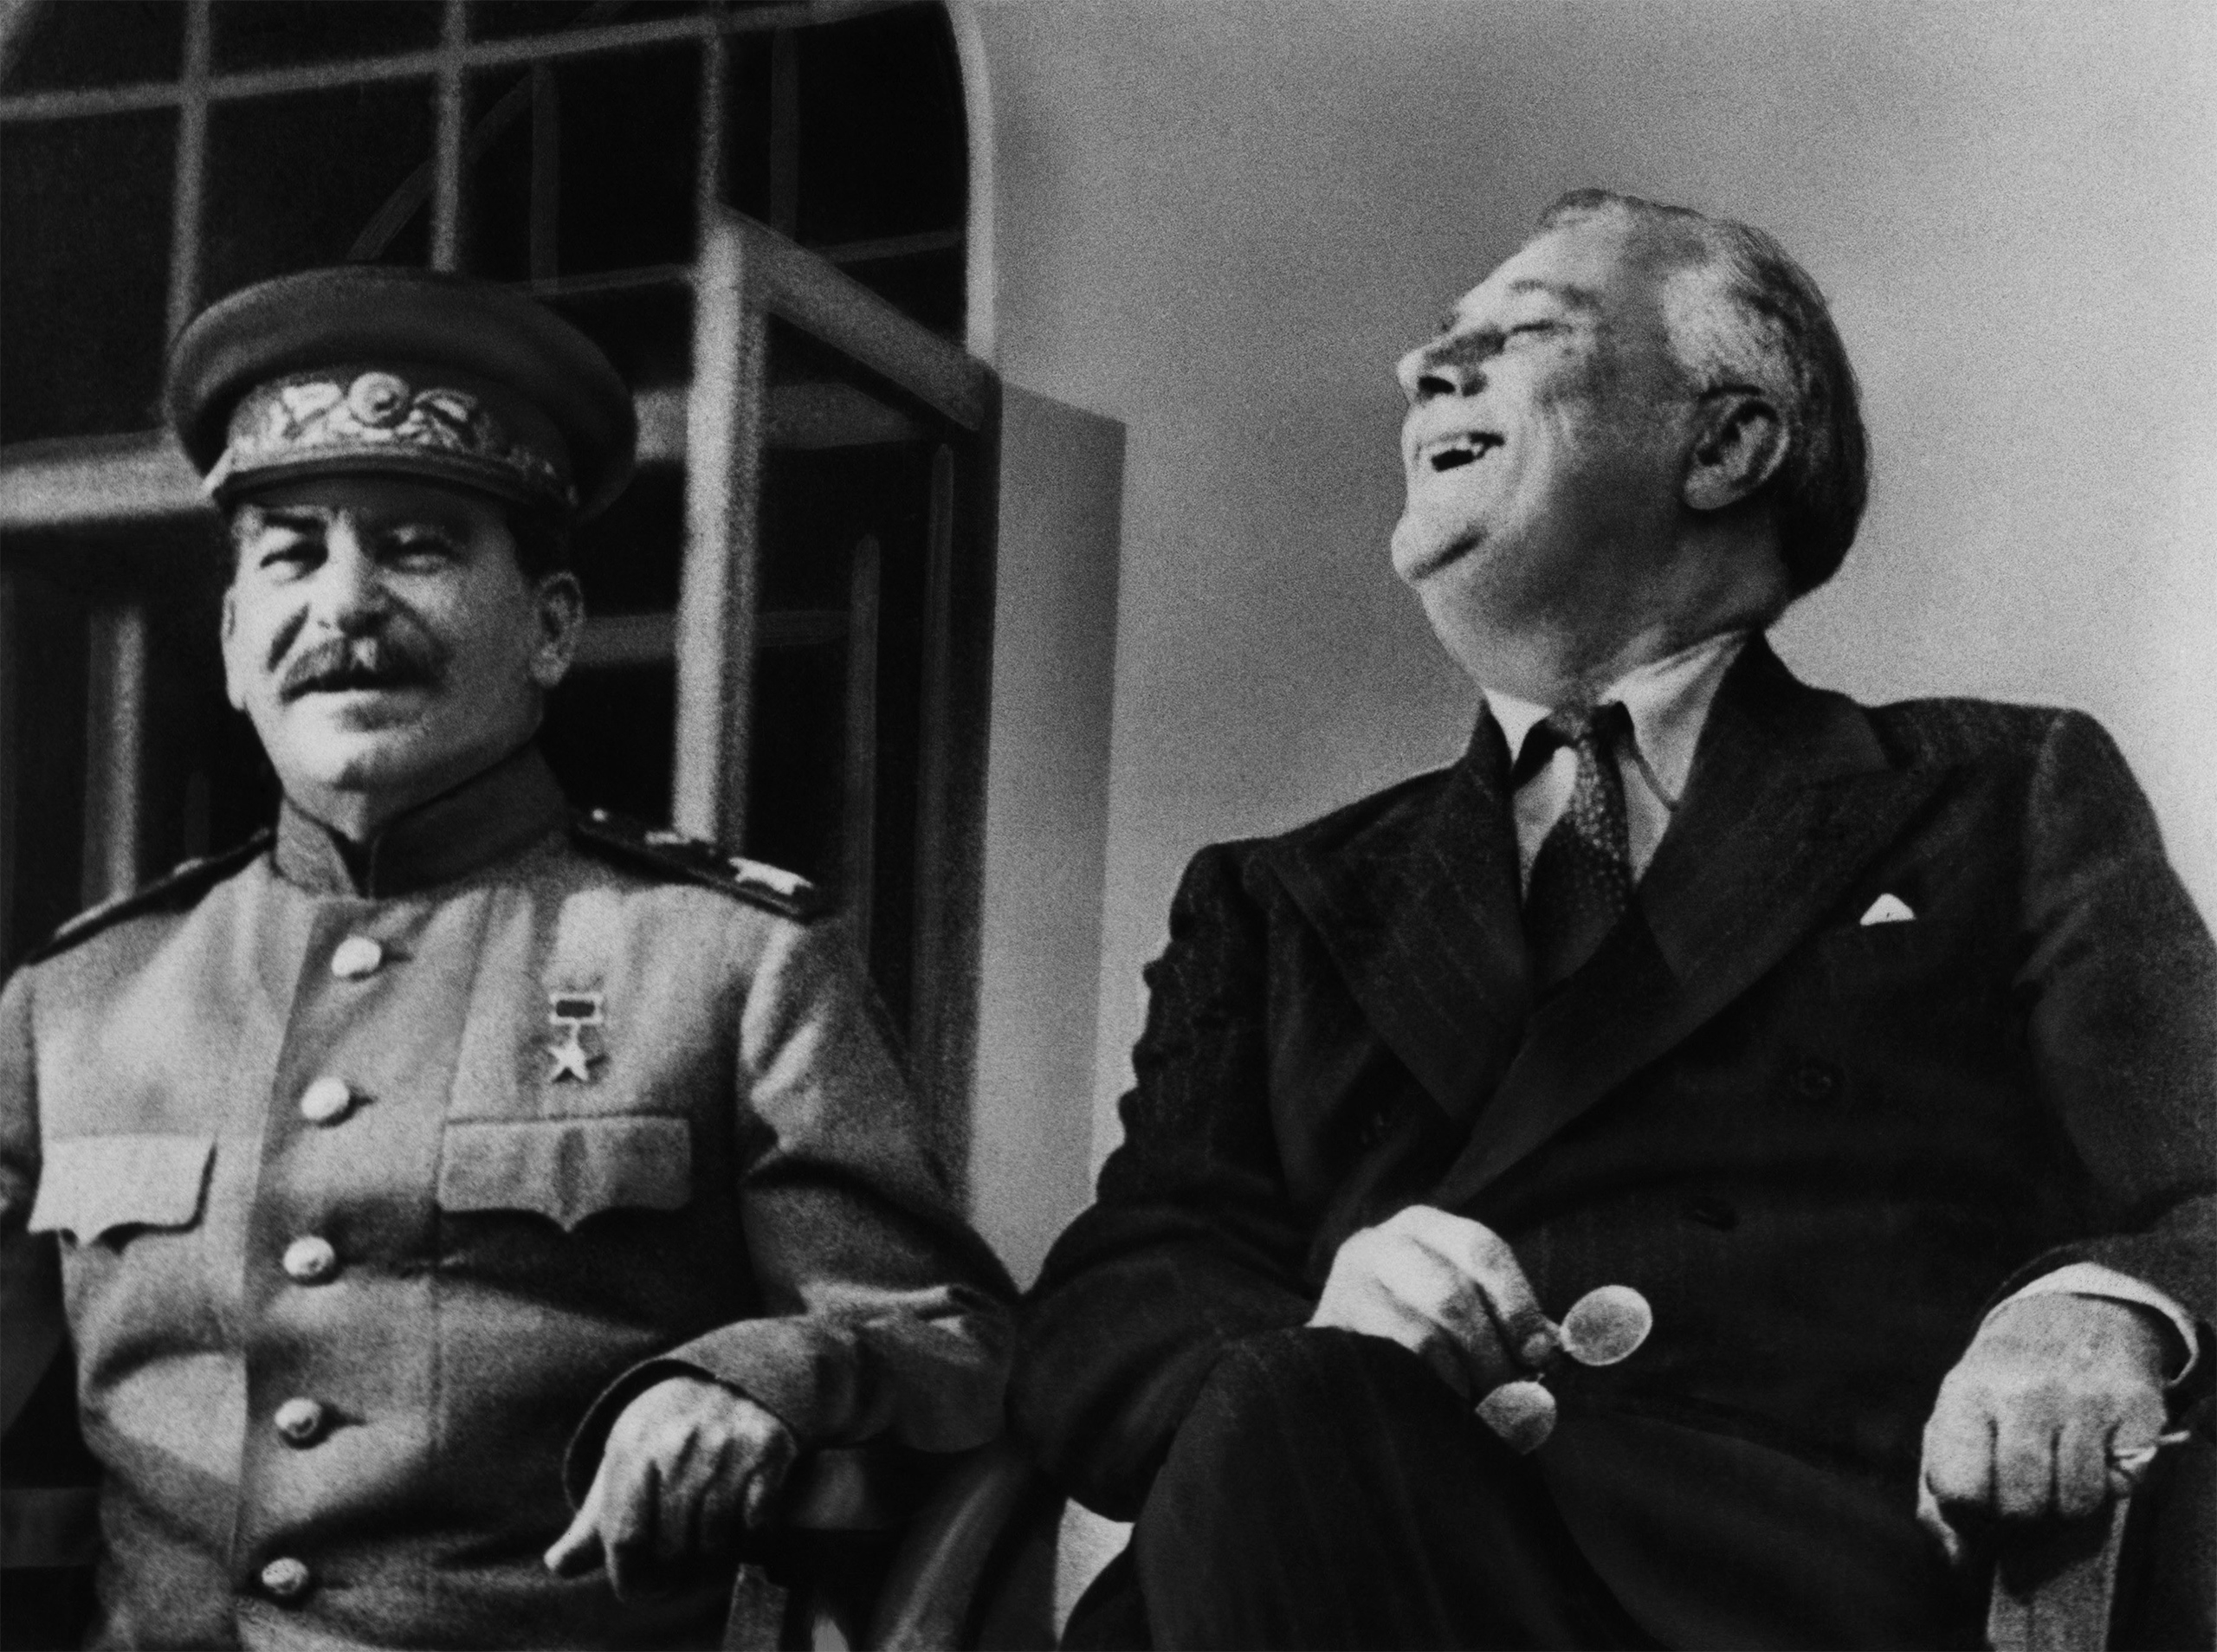 Soviet Premier Josef Stalin and US President Franklin Delano Roosevelt appear on the porch of the Russian embassy in Tehran, Iran in 1943.